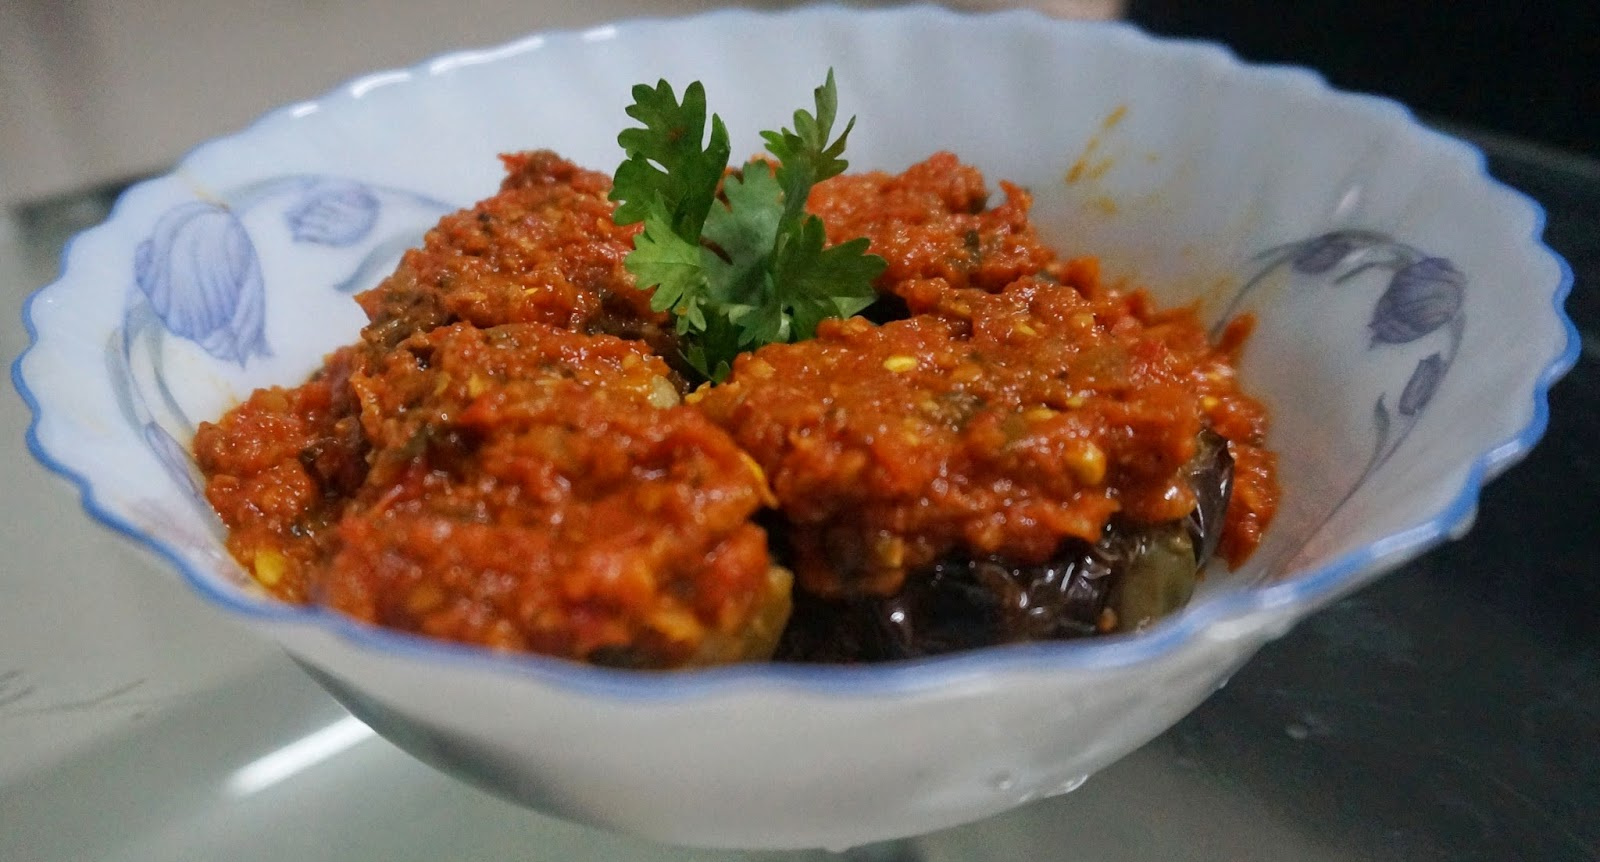 Stuffed capsicum with gravy, Bharwa shimla mirch with curry, potato stuffing